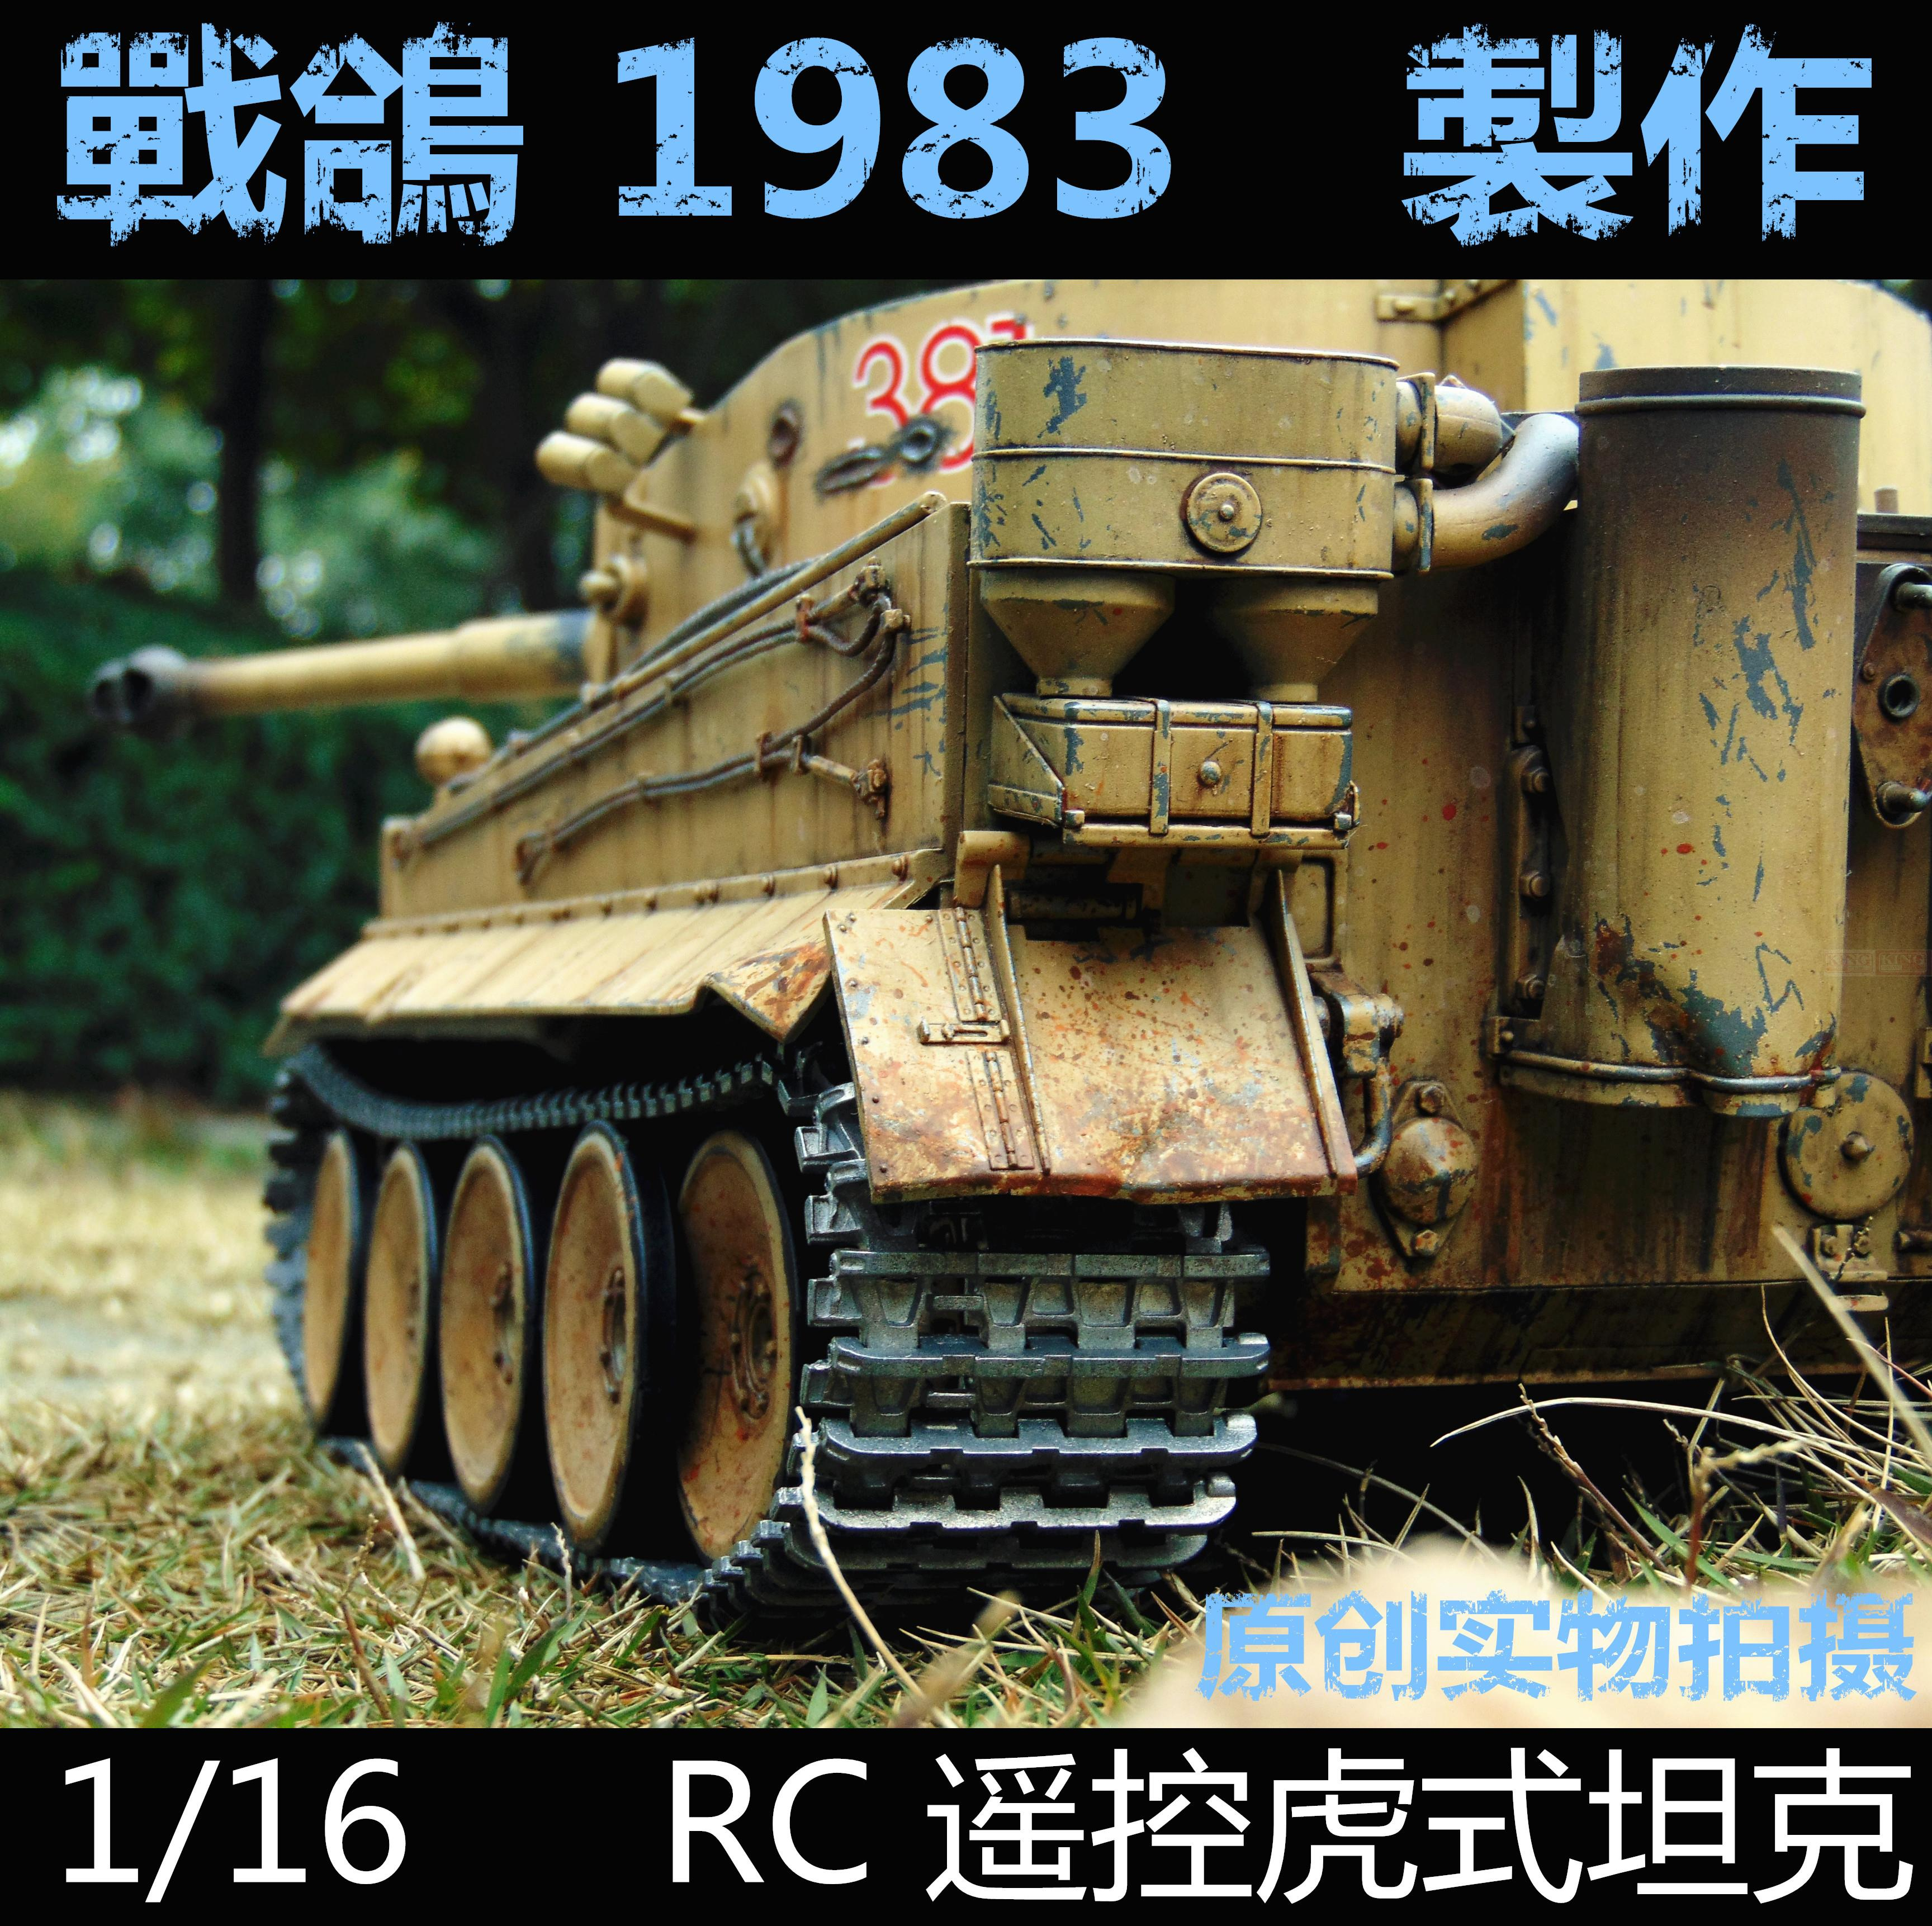 KNL HOBBY HENGLONG 1/16 Tiger RC tank model remote control OEM heavy coating of paint to do the old upgrade knl hobby voyager model pe35418 m1a1 tusk1 ubilan